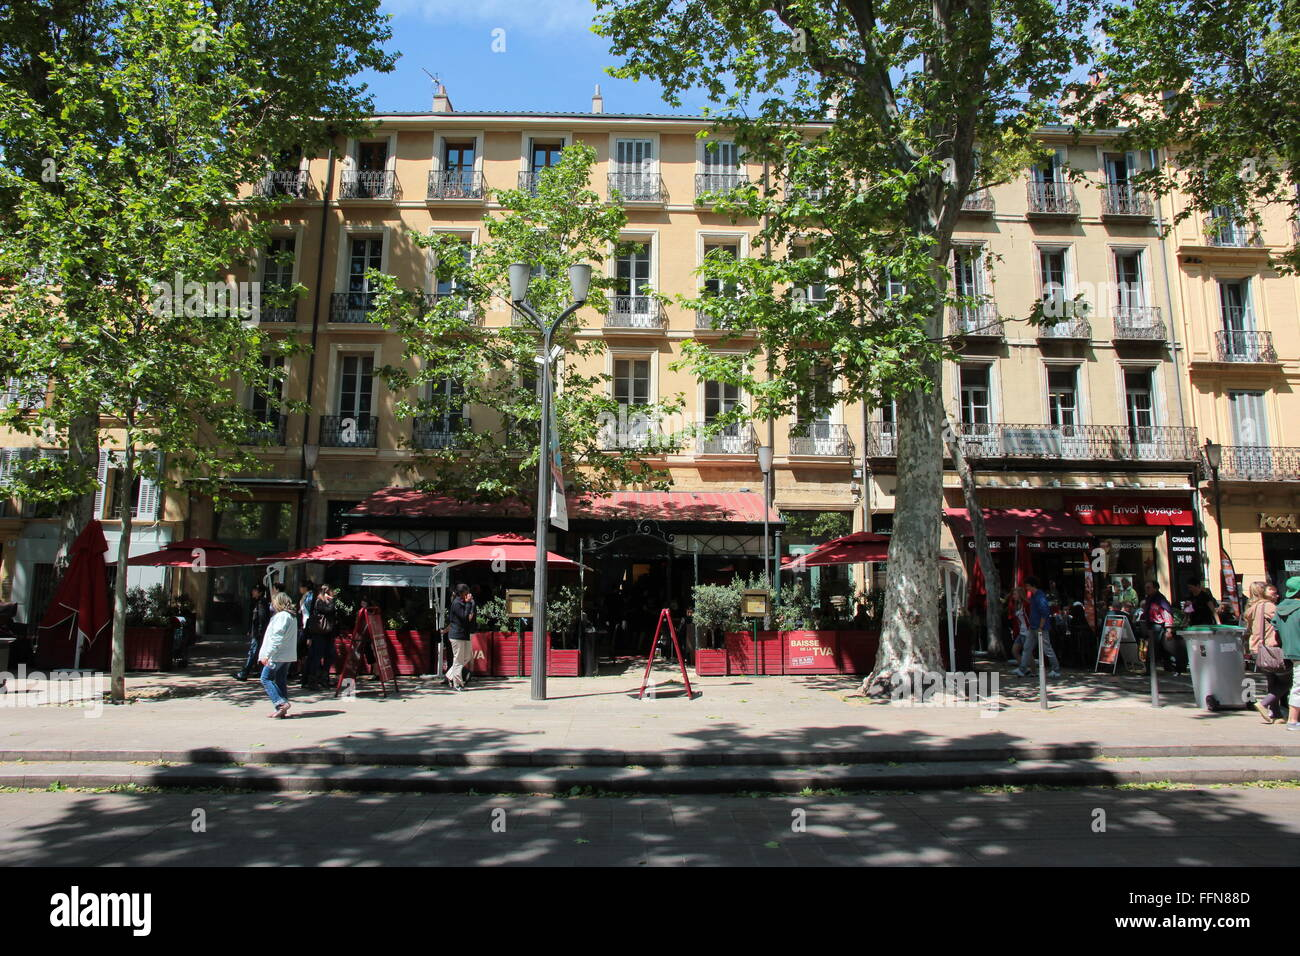 Geographie/reisen, Frankreich, Aix-en-Provence, Cafe am Cours Mirabeau,, Additional-Rights - Clearance-Info - Not Stockbild